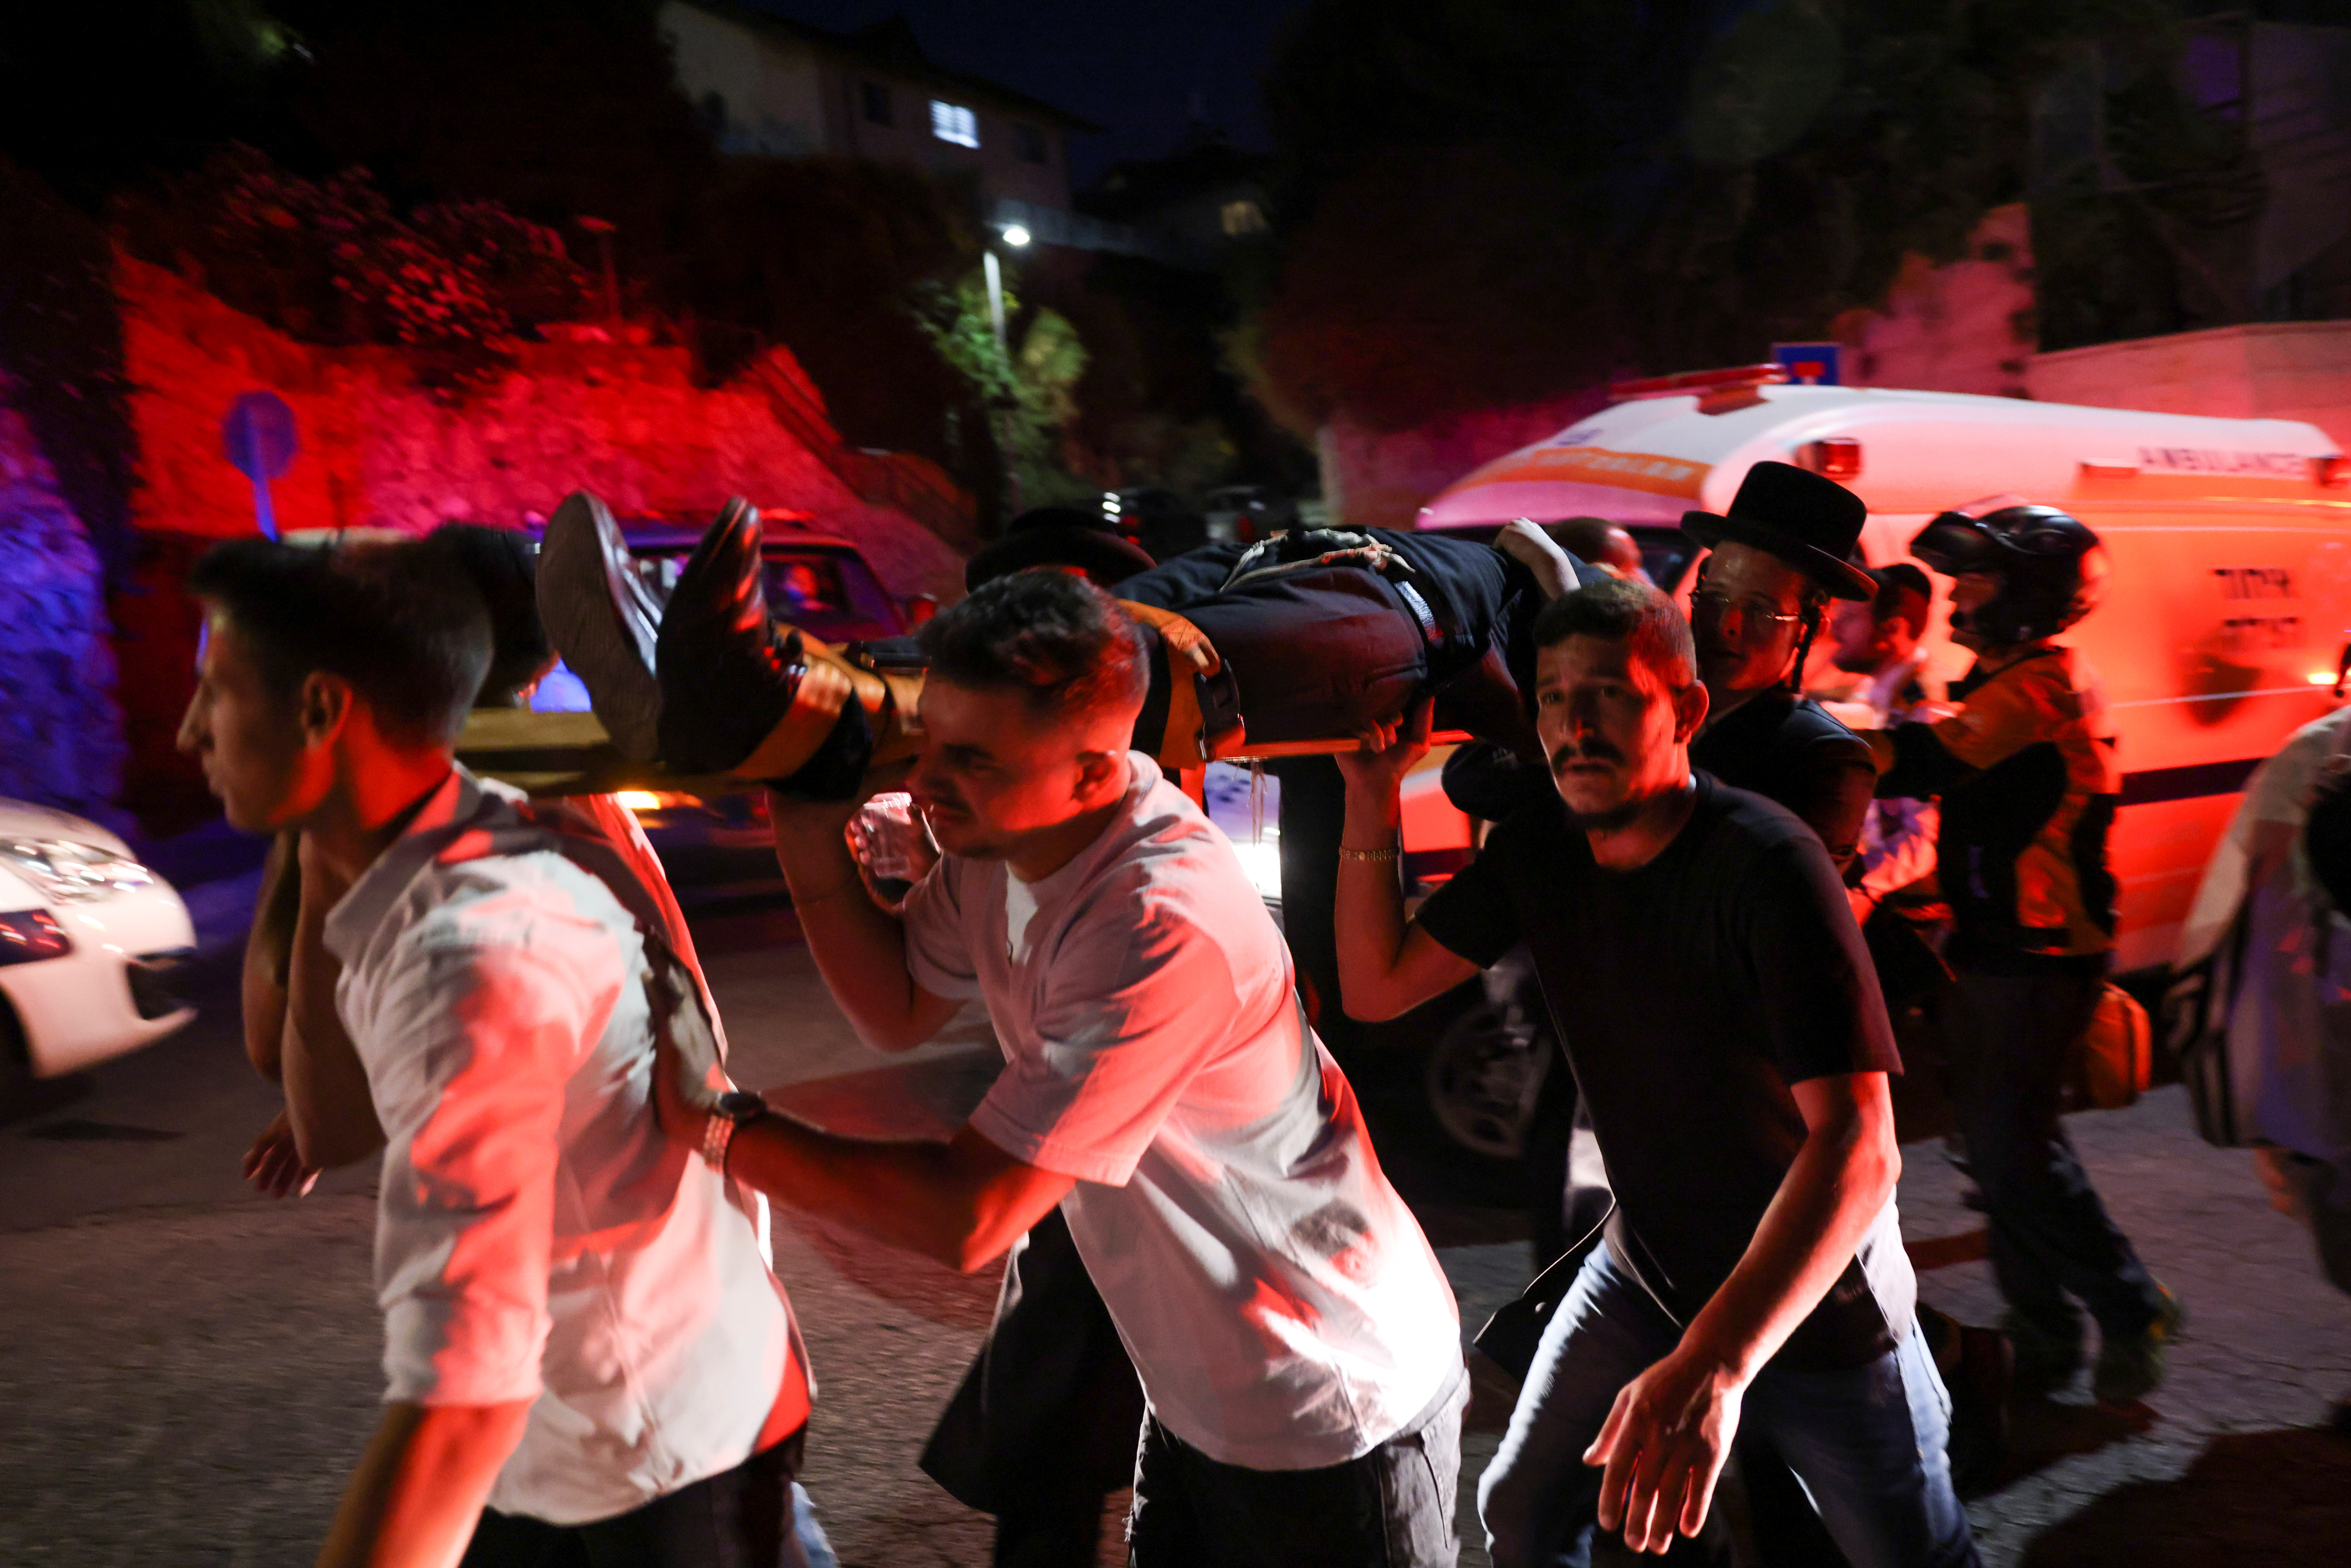 Jewish worshippers and rescue workers carry injured people outside a synagogue where a grandstand collapsed during a religious celebration in Givat Zeev, in the occupied West Bank, May 16, 2021. REUTERS/Ronen Zvulun